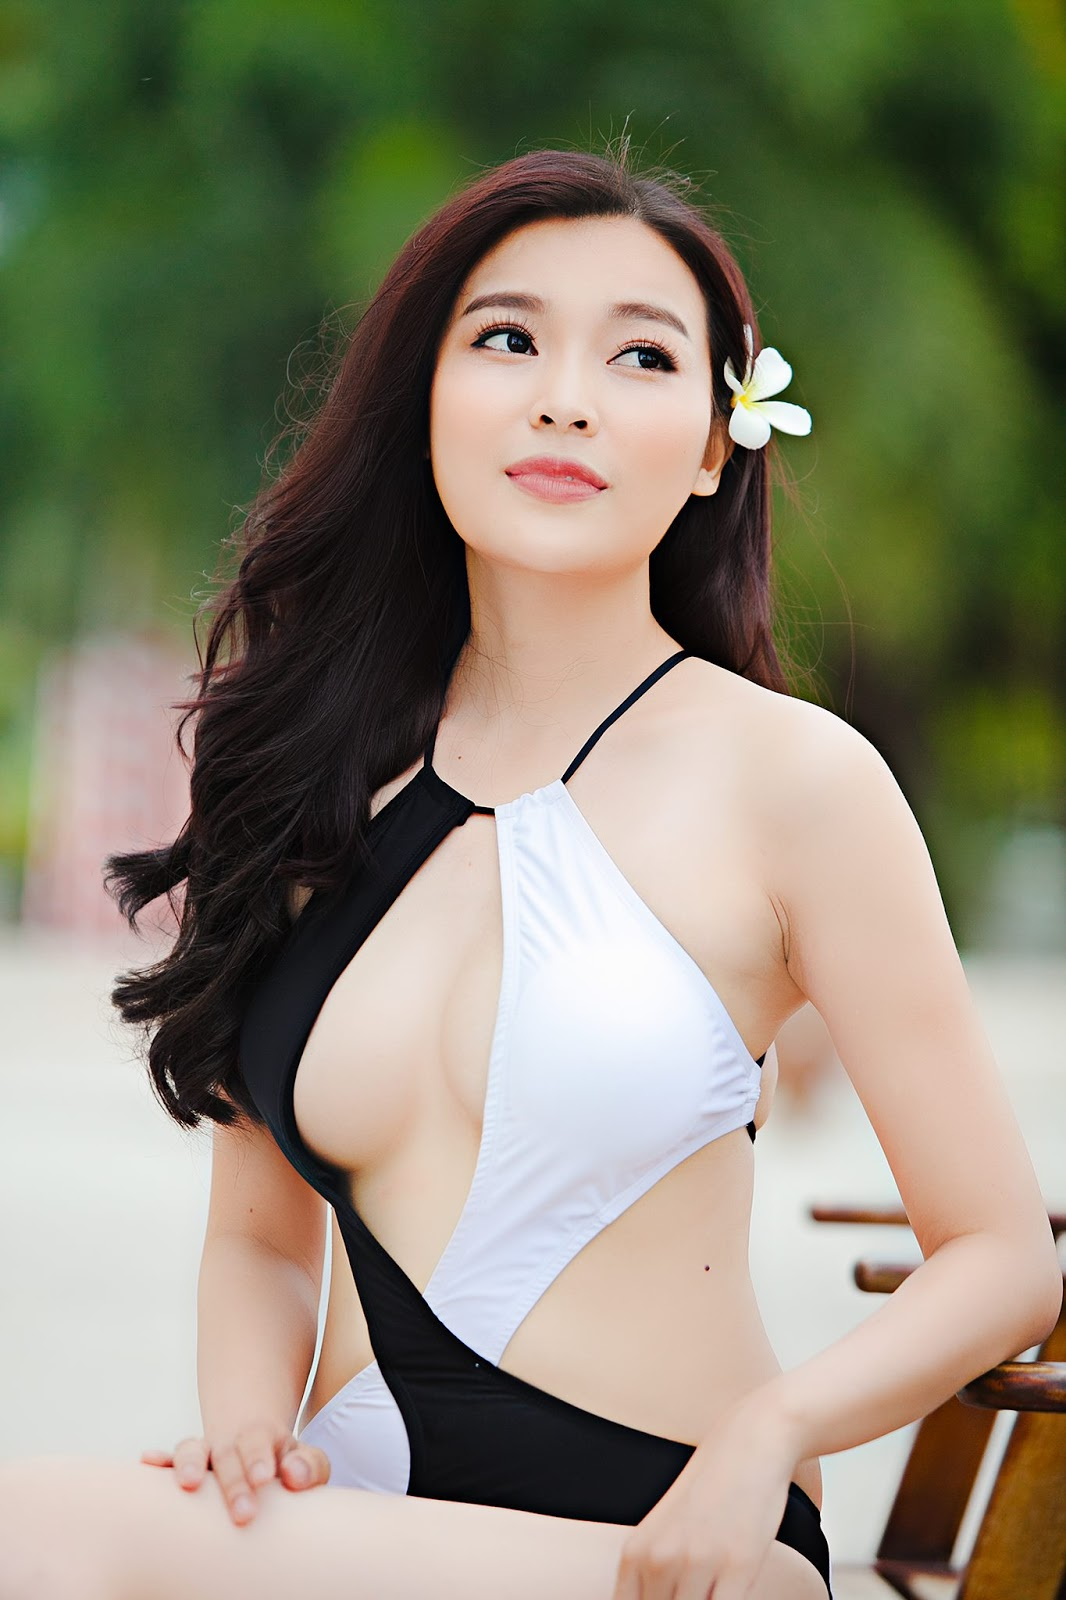 Busty dating sites, kerala sex tpg